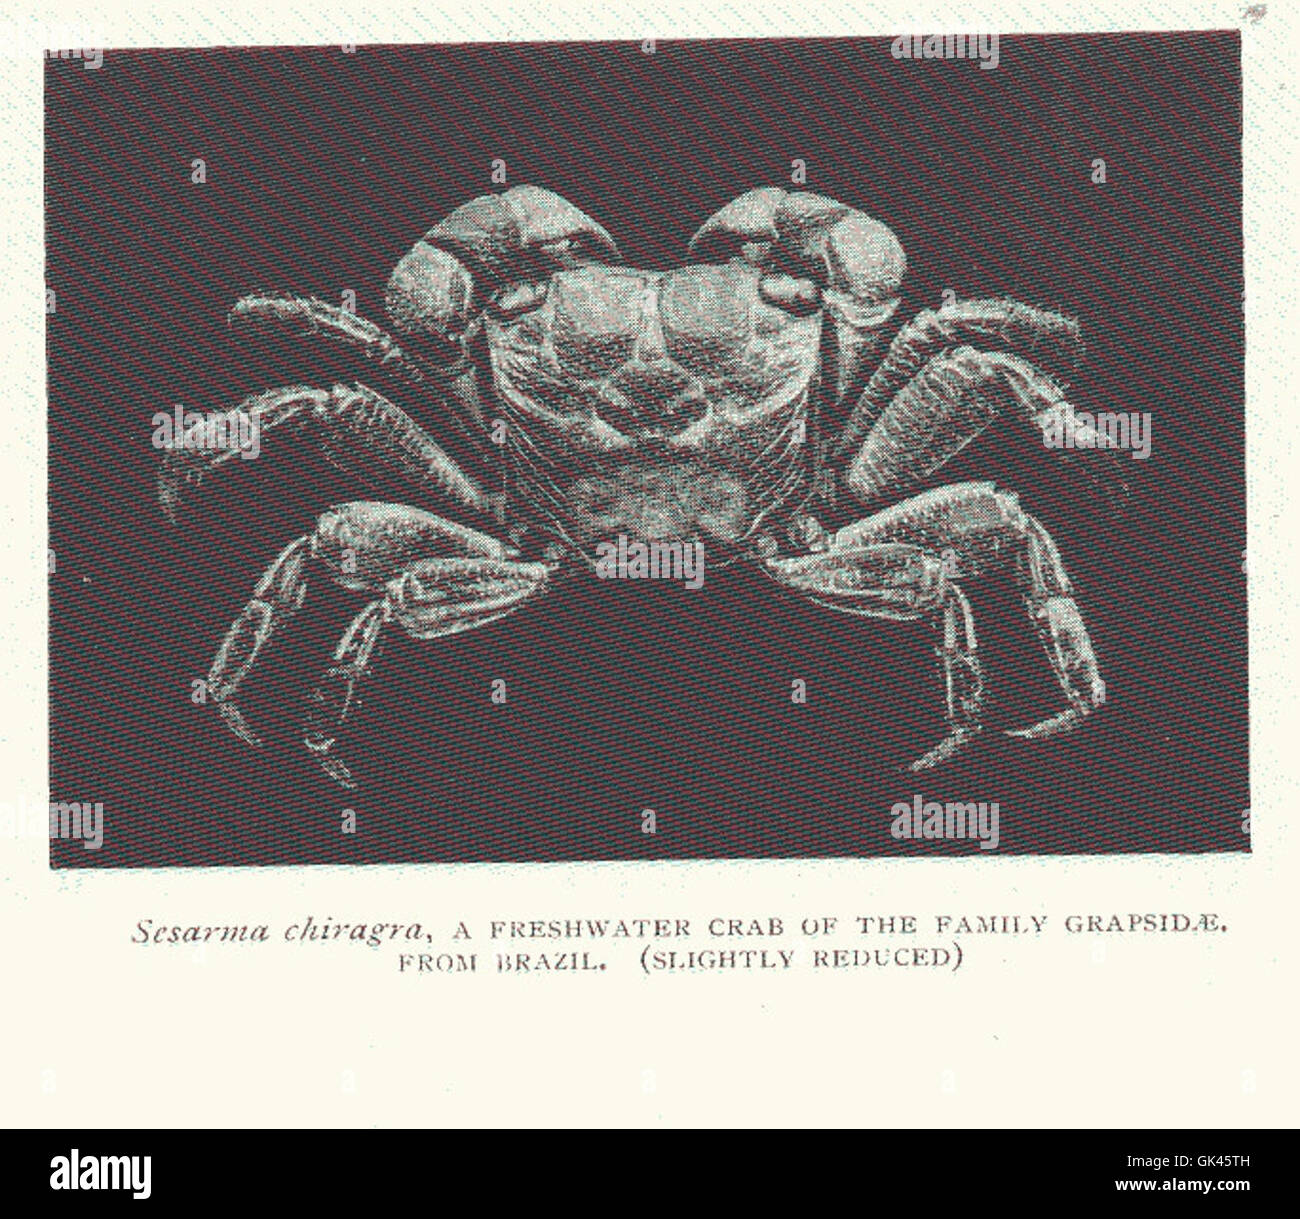 46488 Sesarma chiagra, a Freshwater crab of the family Grapsidae, from Brazil - Stock Image